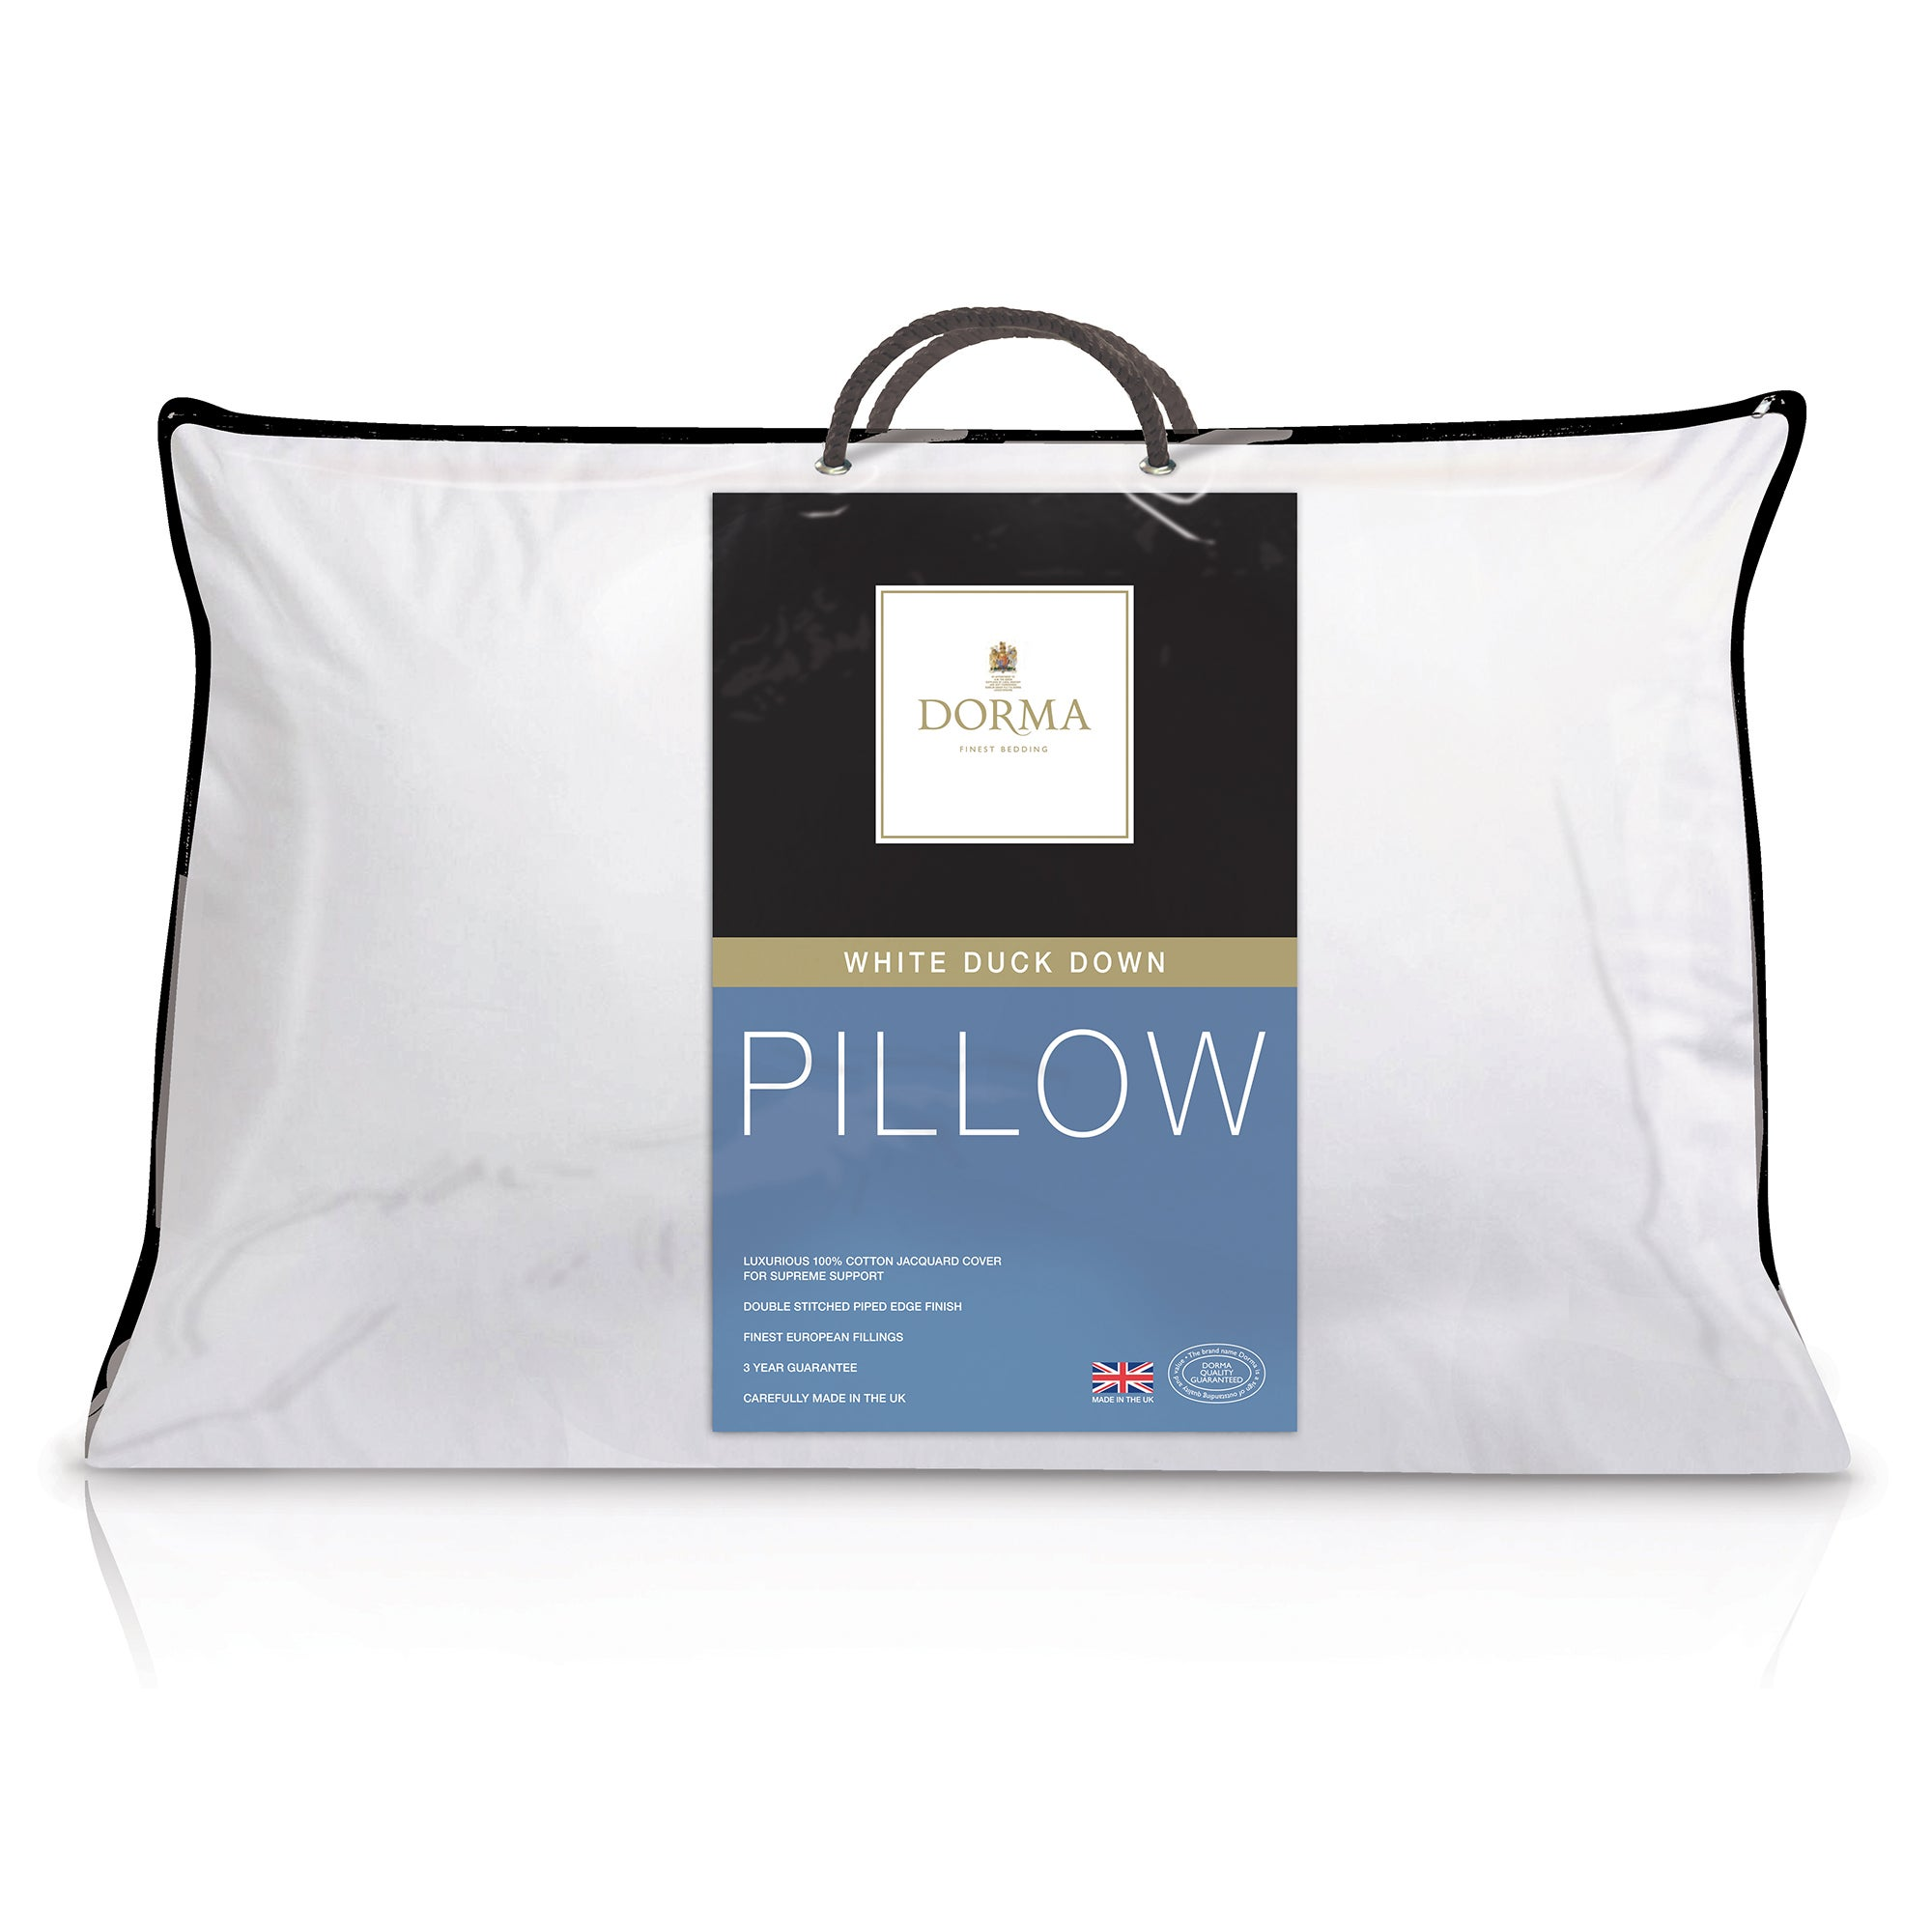 Dorma White Duck Down Pillow